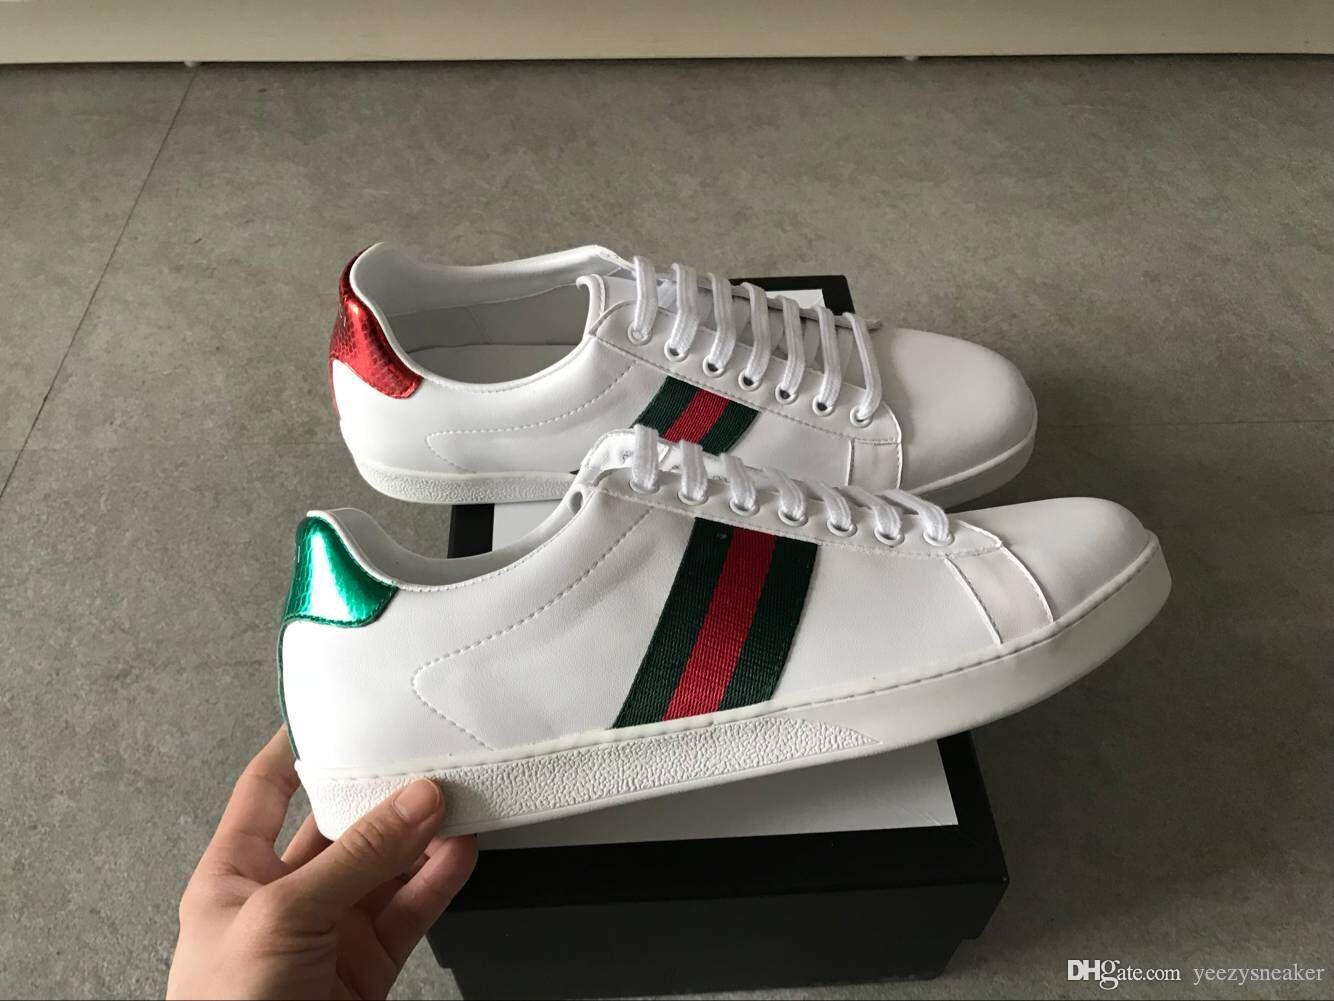 2019 New Arrival Fashion Men Women Casual Shoes Top Quality Genuine Leather Bee Embroidered Gucci Sneakers Shoes With Box